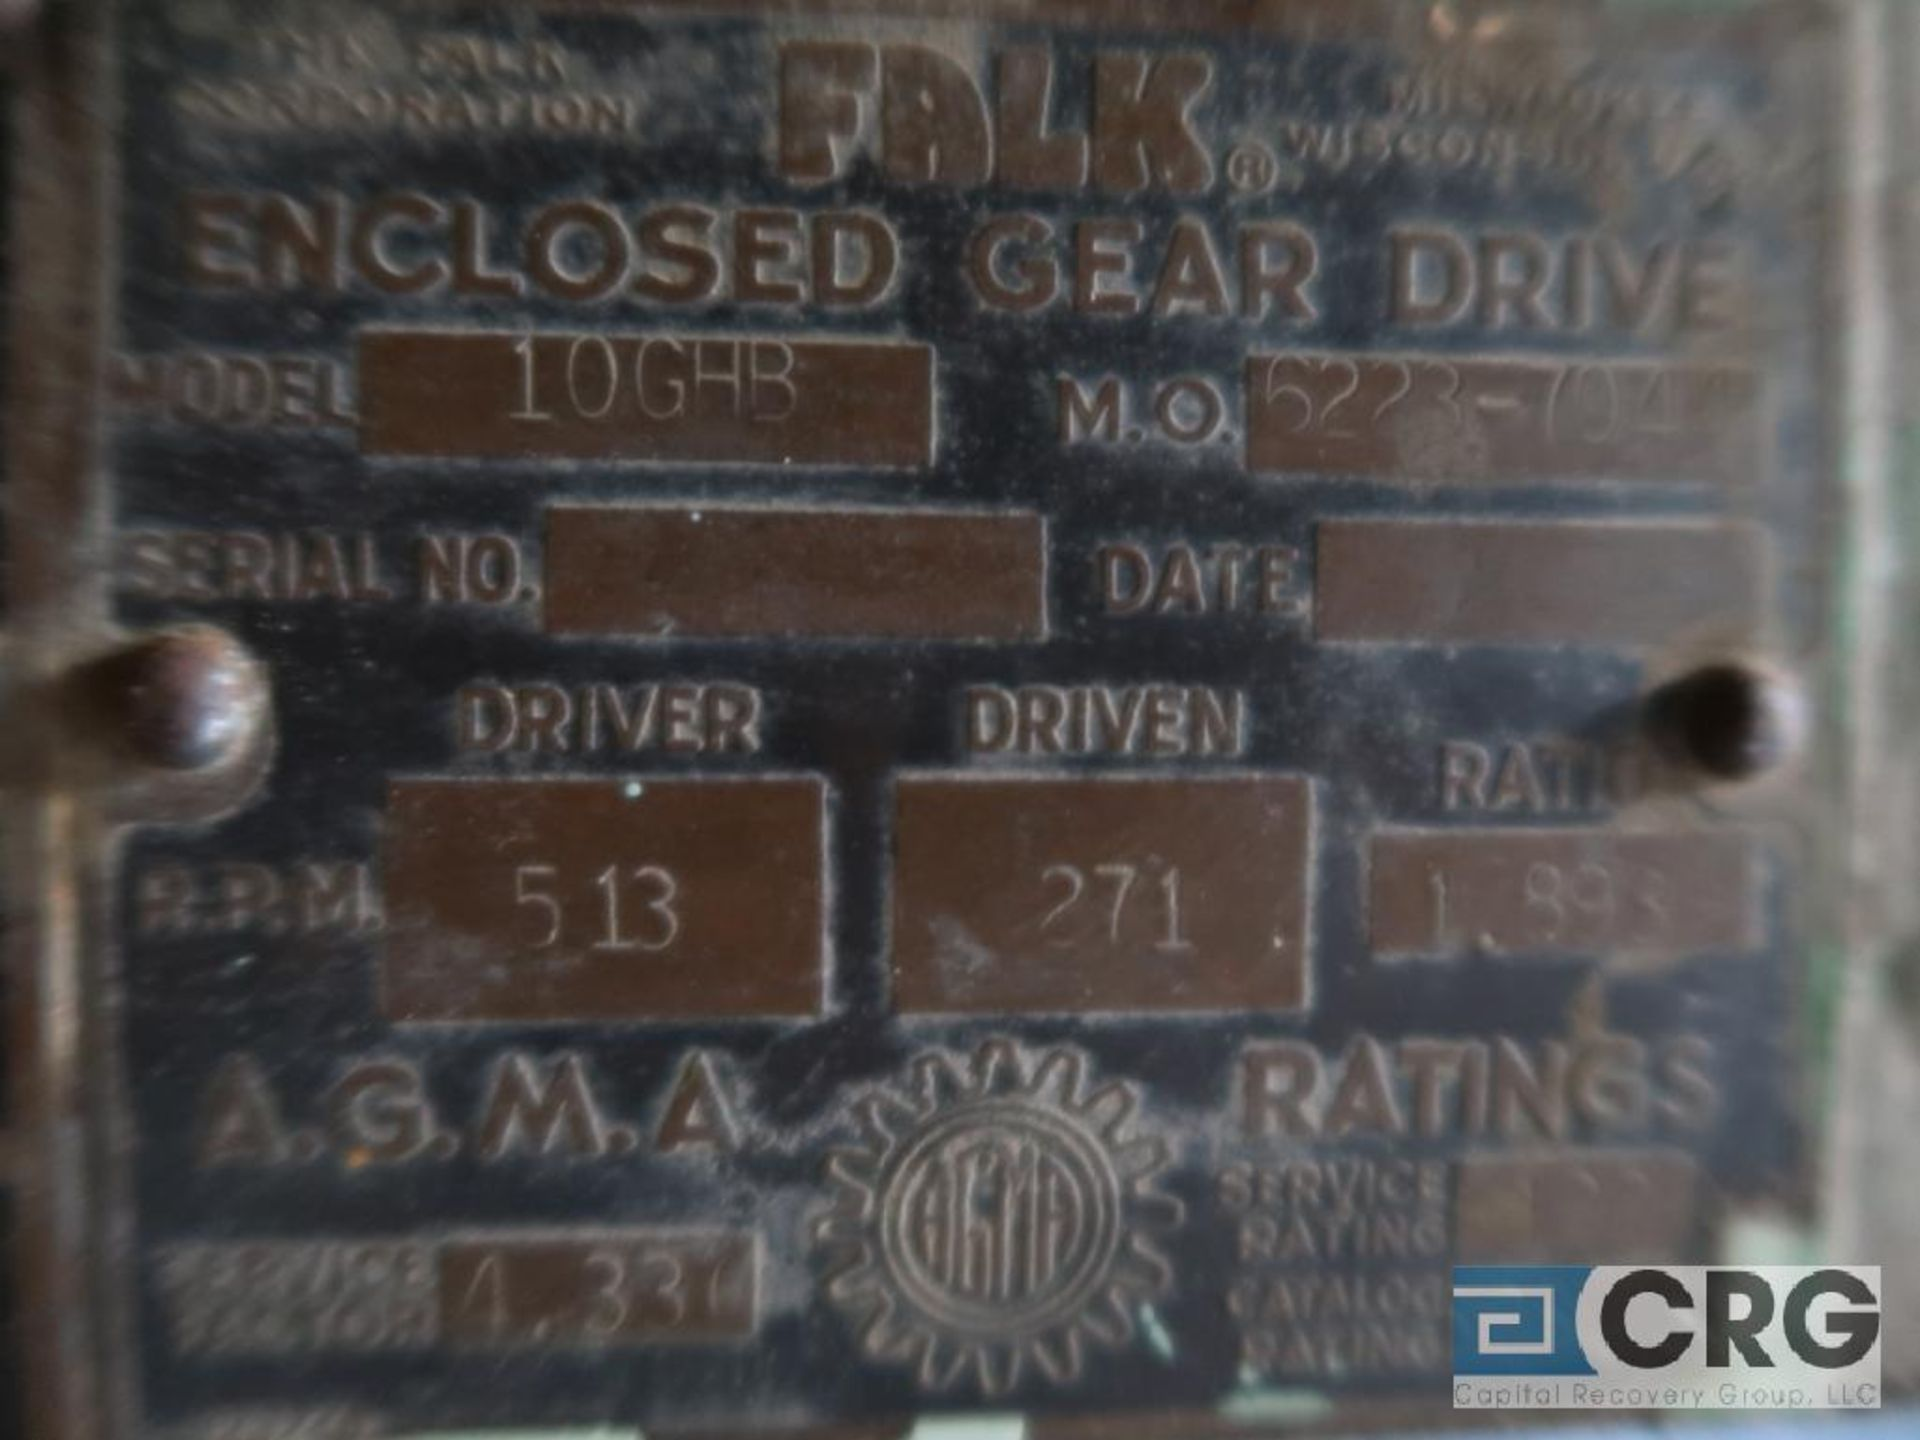 Falk 10GHB gear drive, ratio-3.529, RPM 513, s/n 622304 (Next Bay Cage Area) - Image 3 of 3